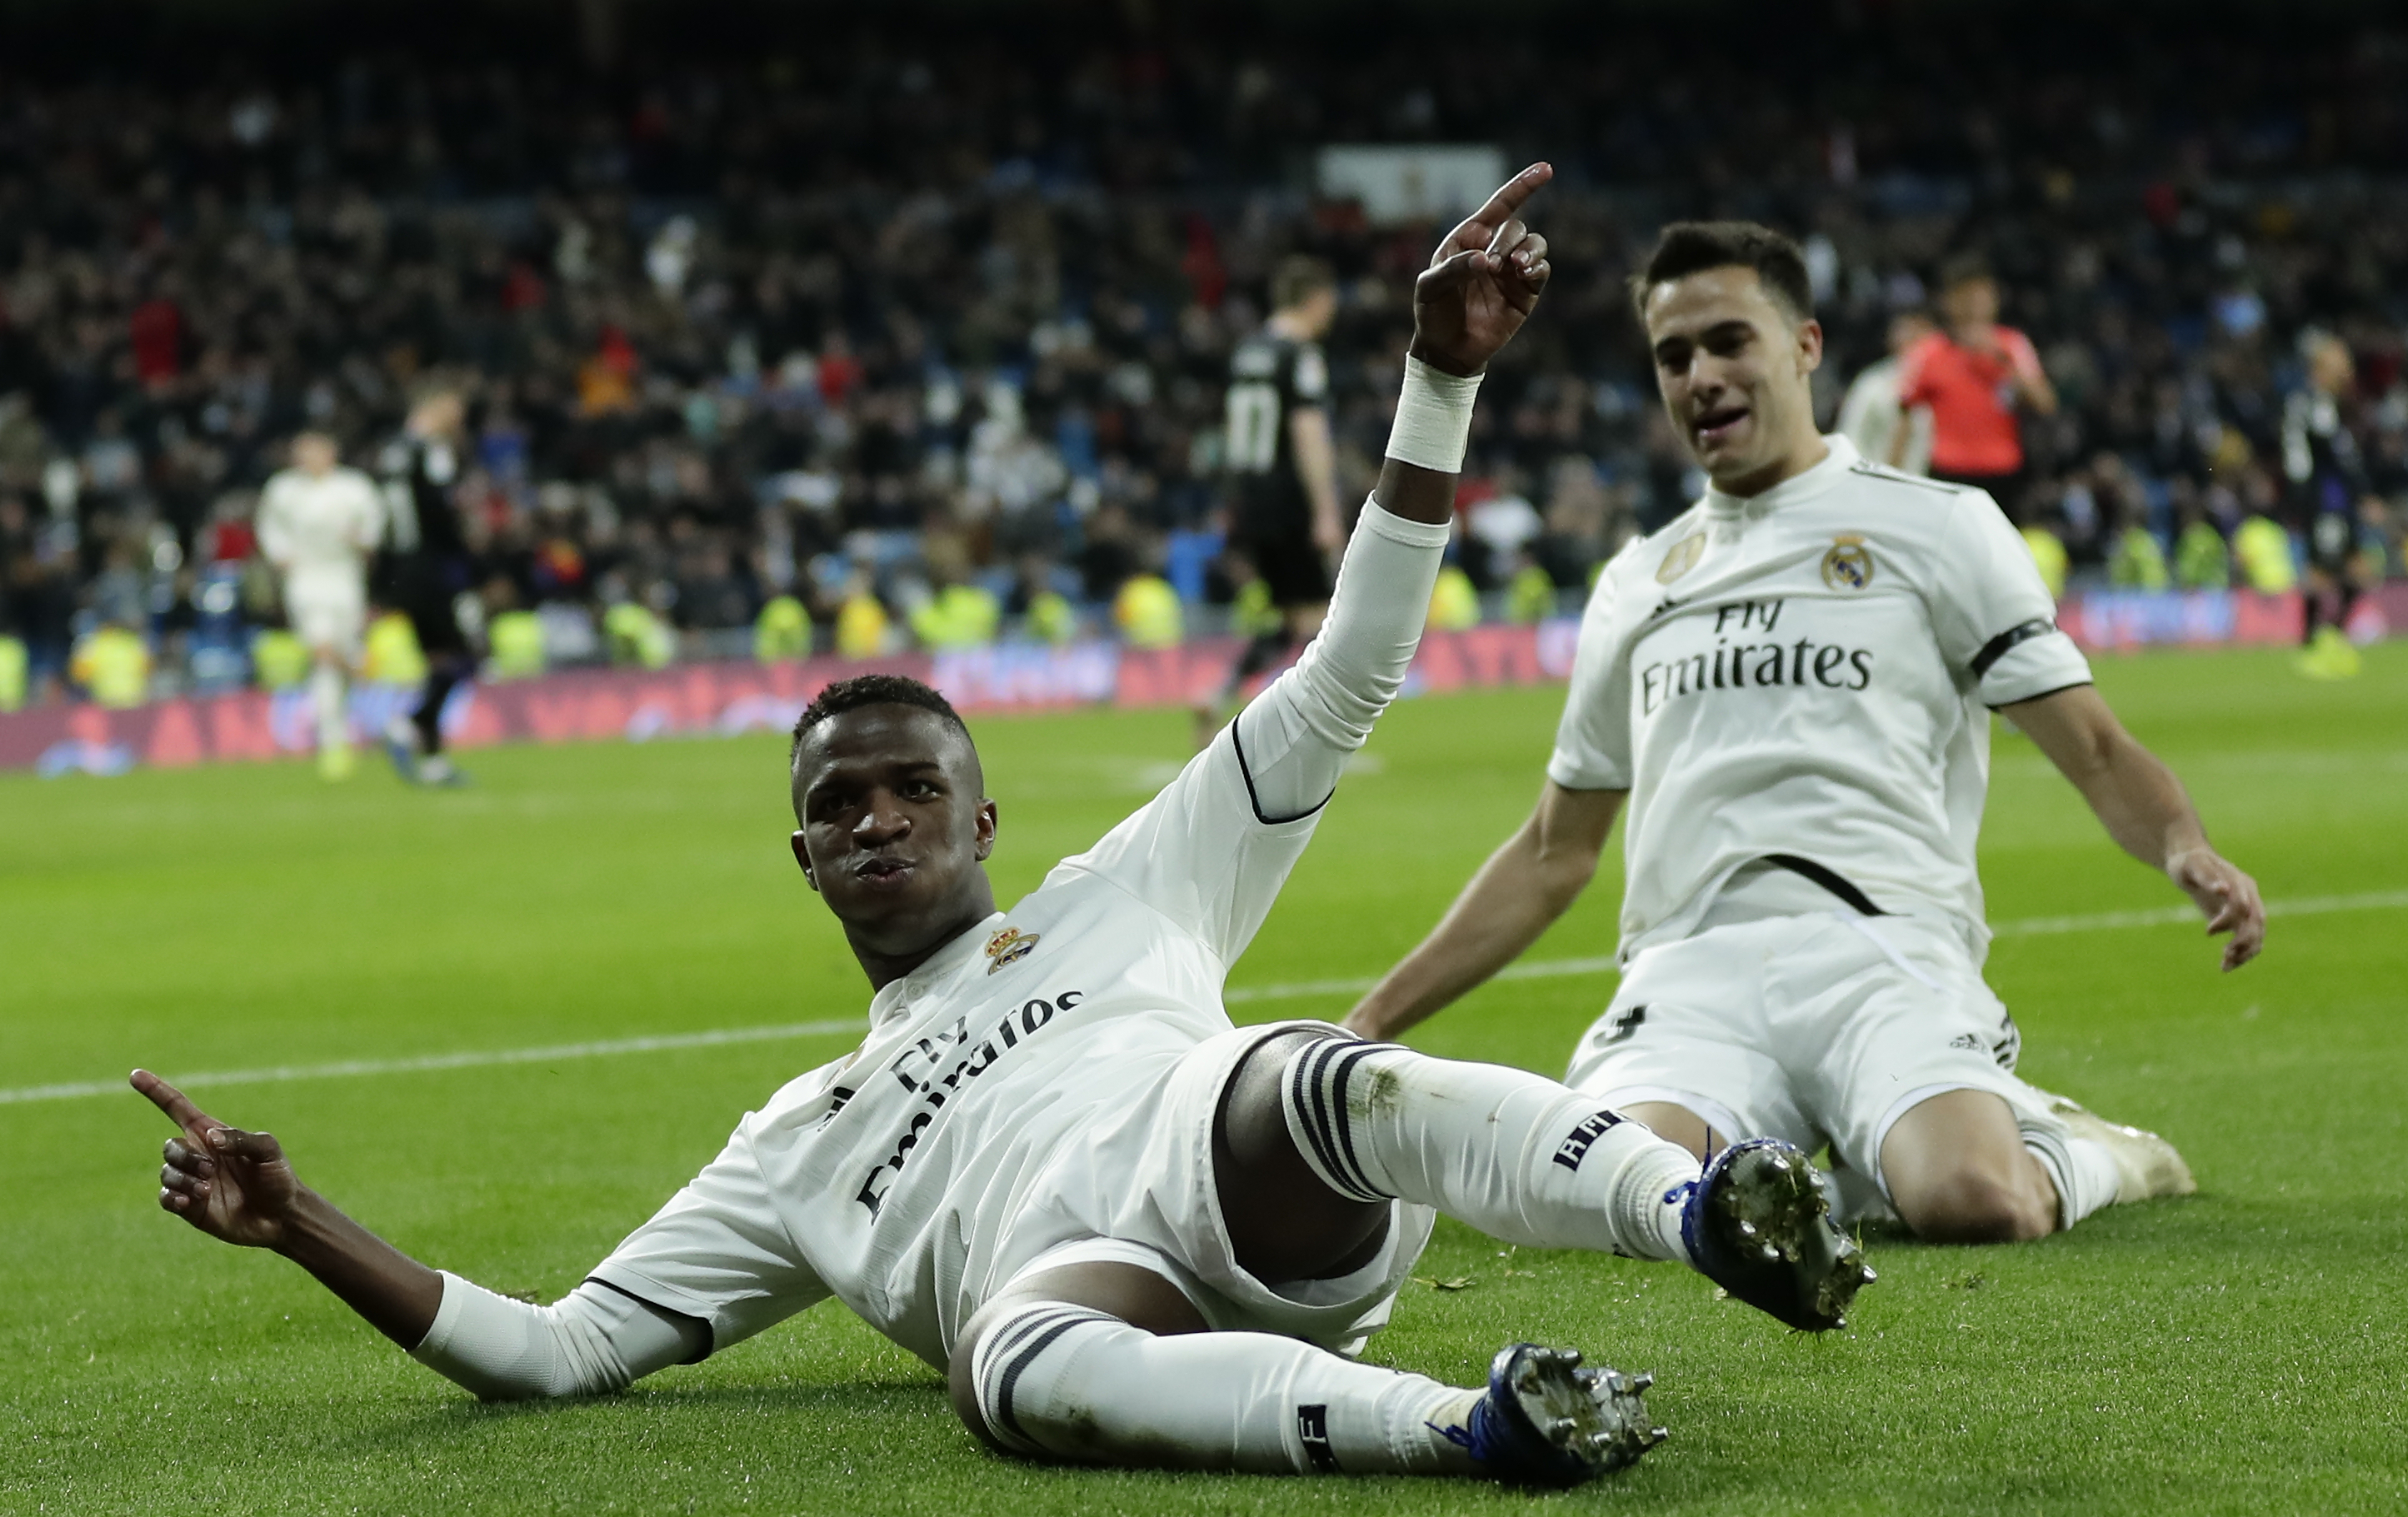 Vinicius inspires Madrid to much-needed win over Leganes